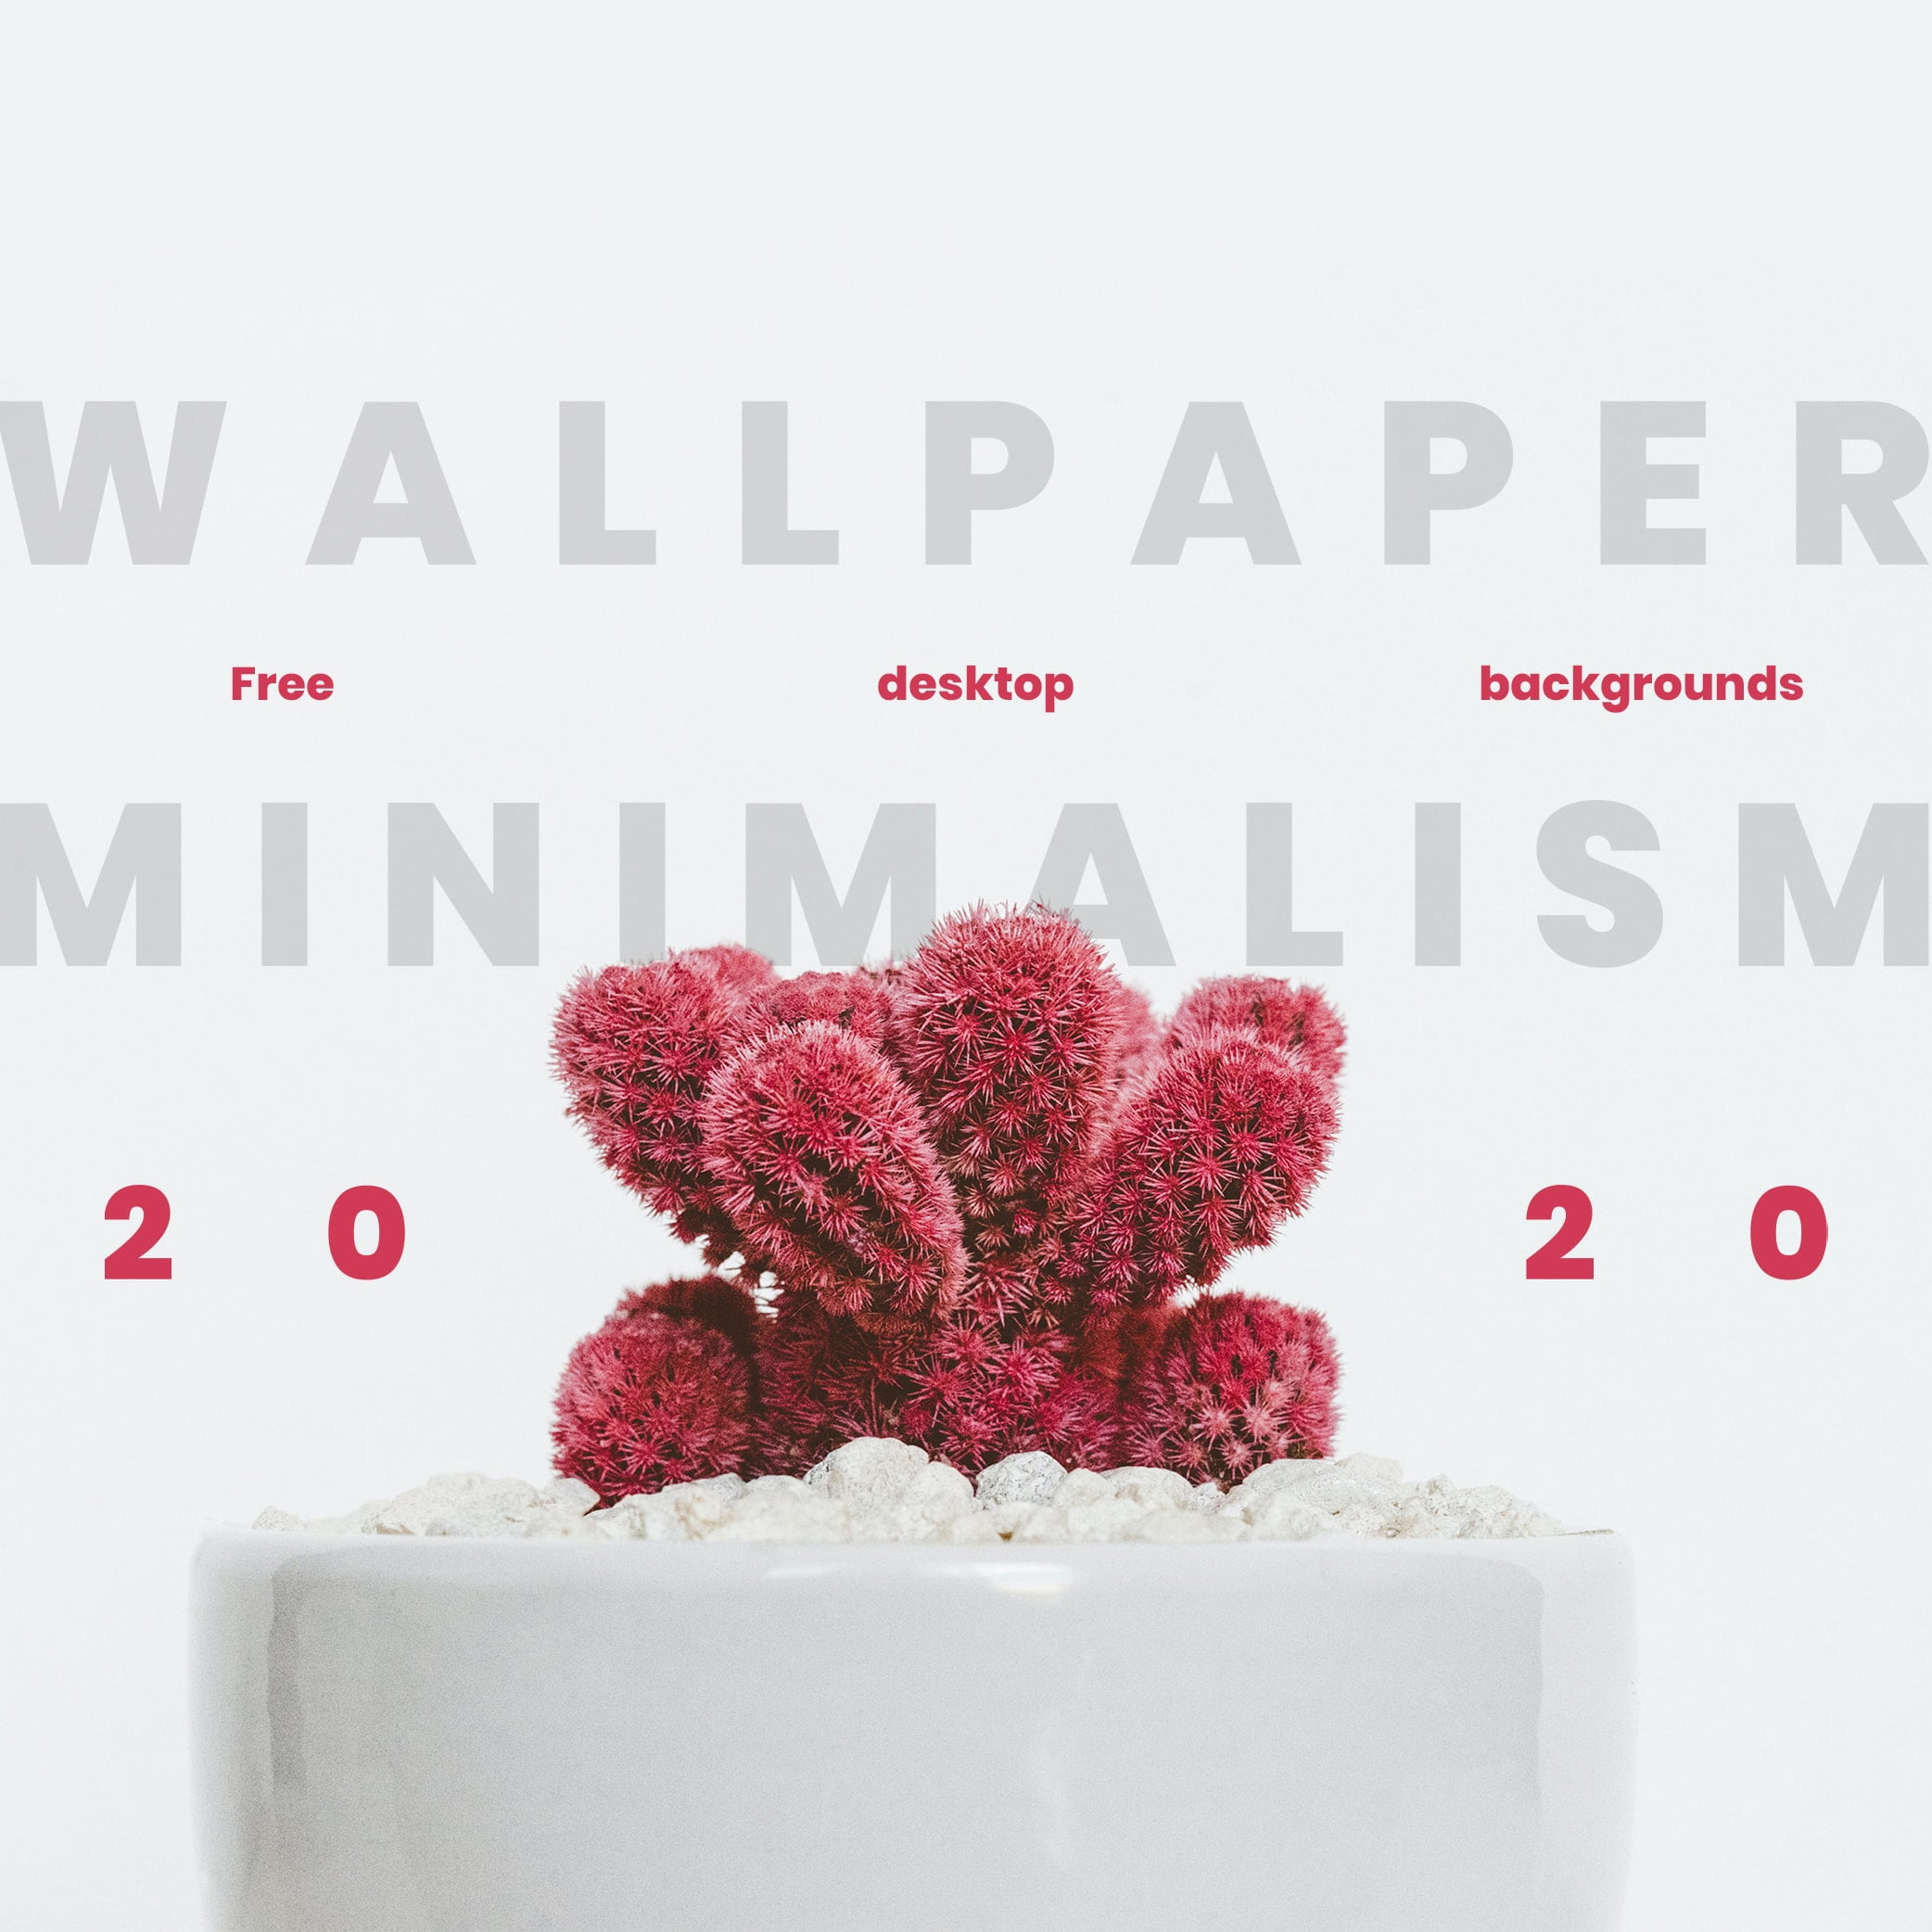 Wallpaper Minimalism – Free Desktop Backgrounds for 2020